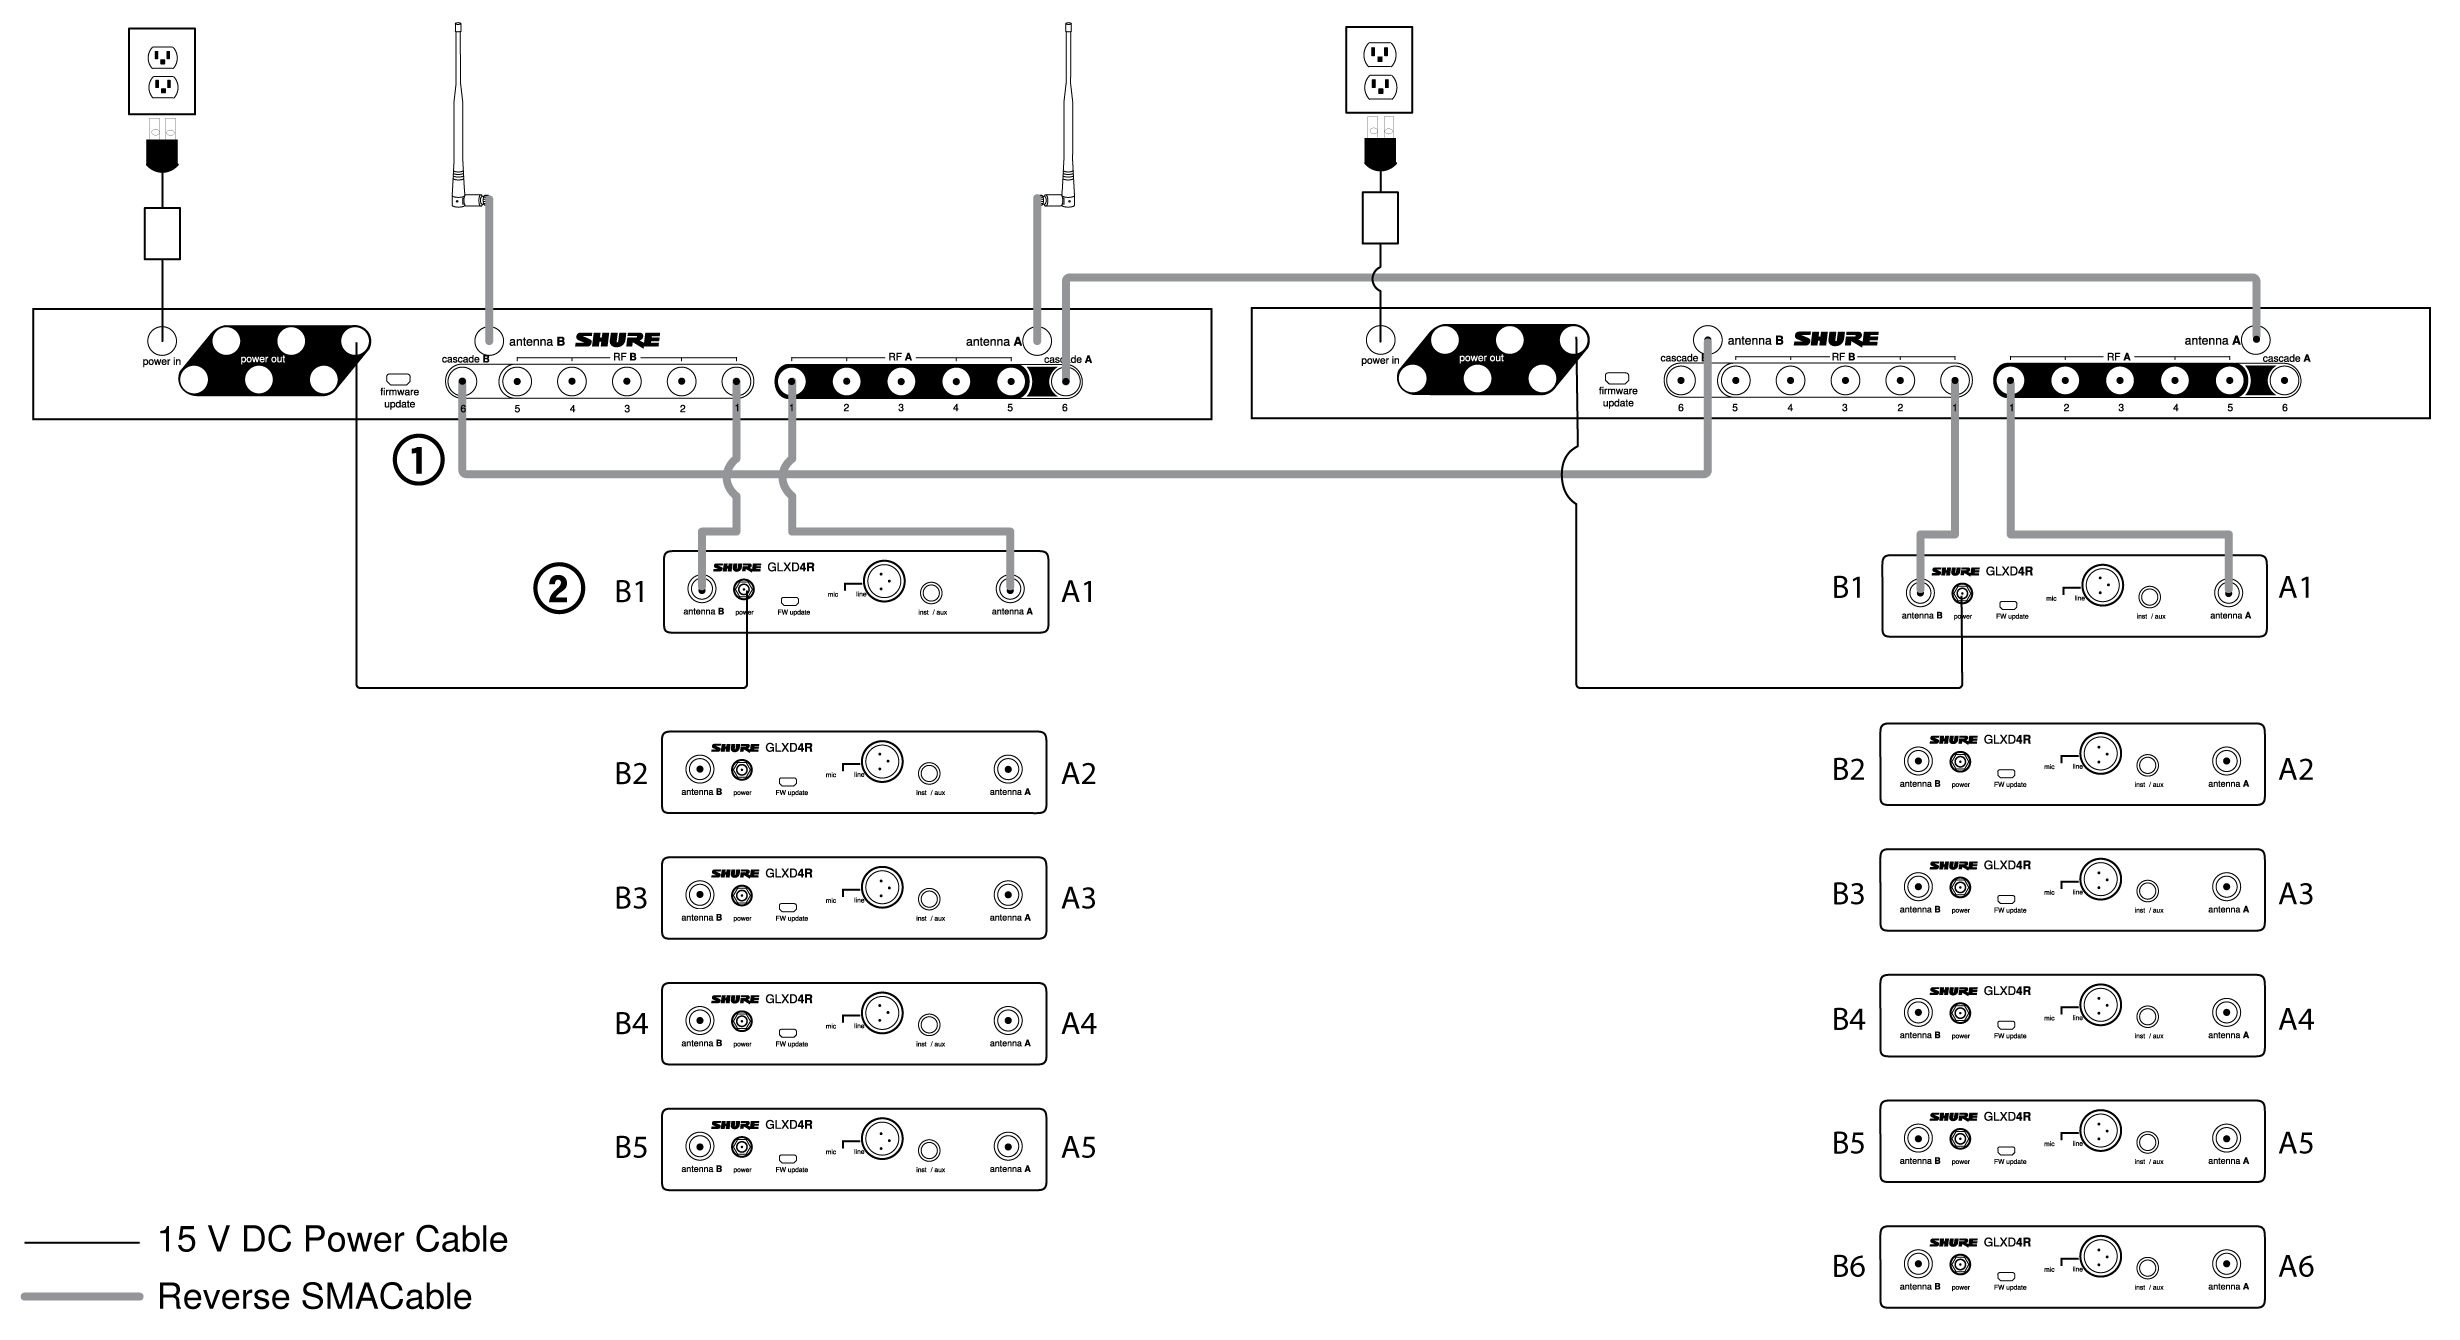 cascaded form c dry contact wiring schematic